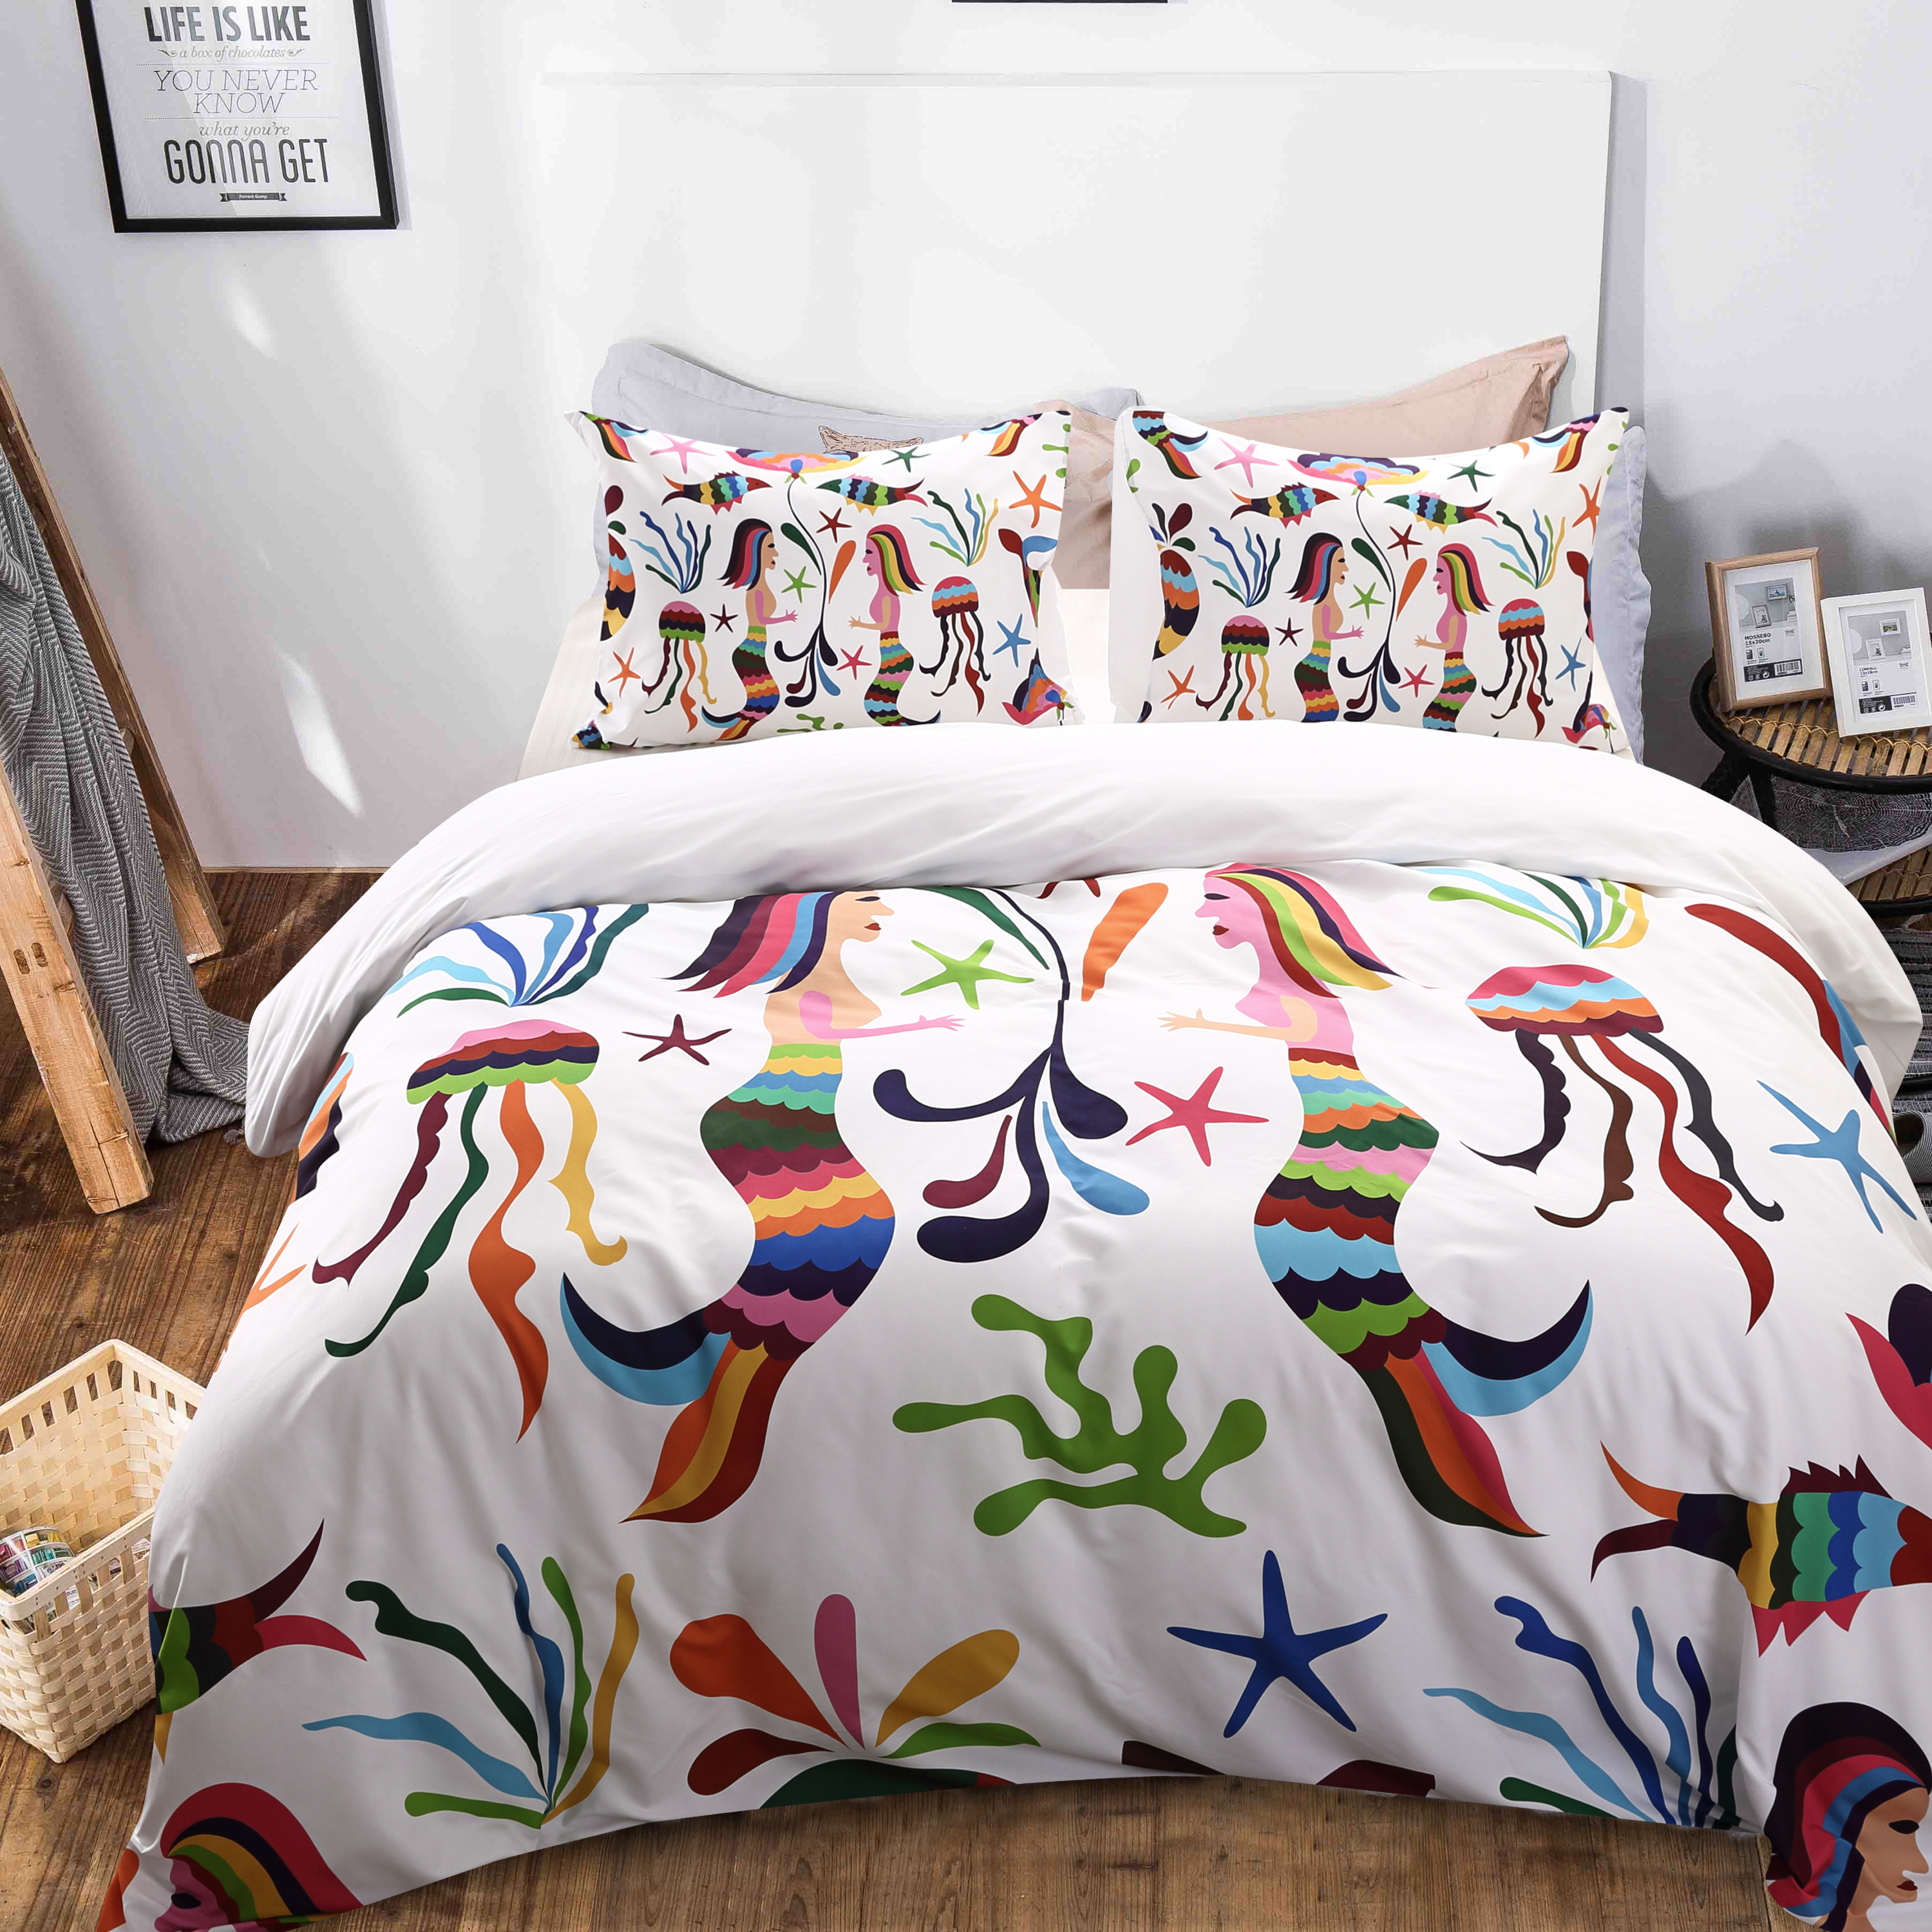 Set Twin Queen King Size Mermaid Duvet Cover Quilt Cover